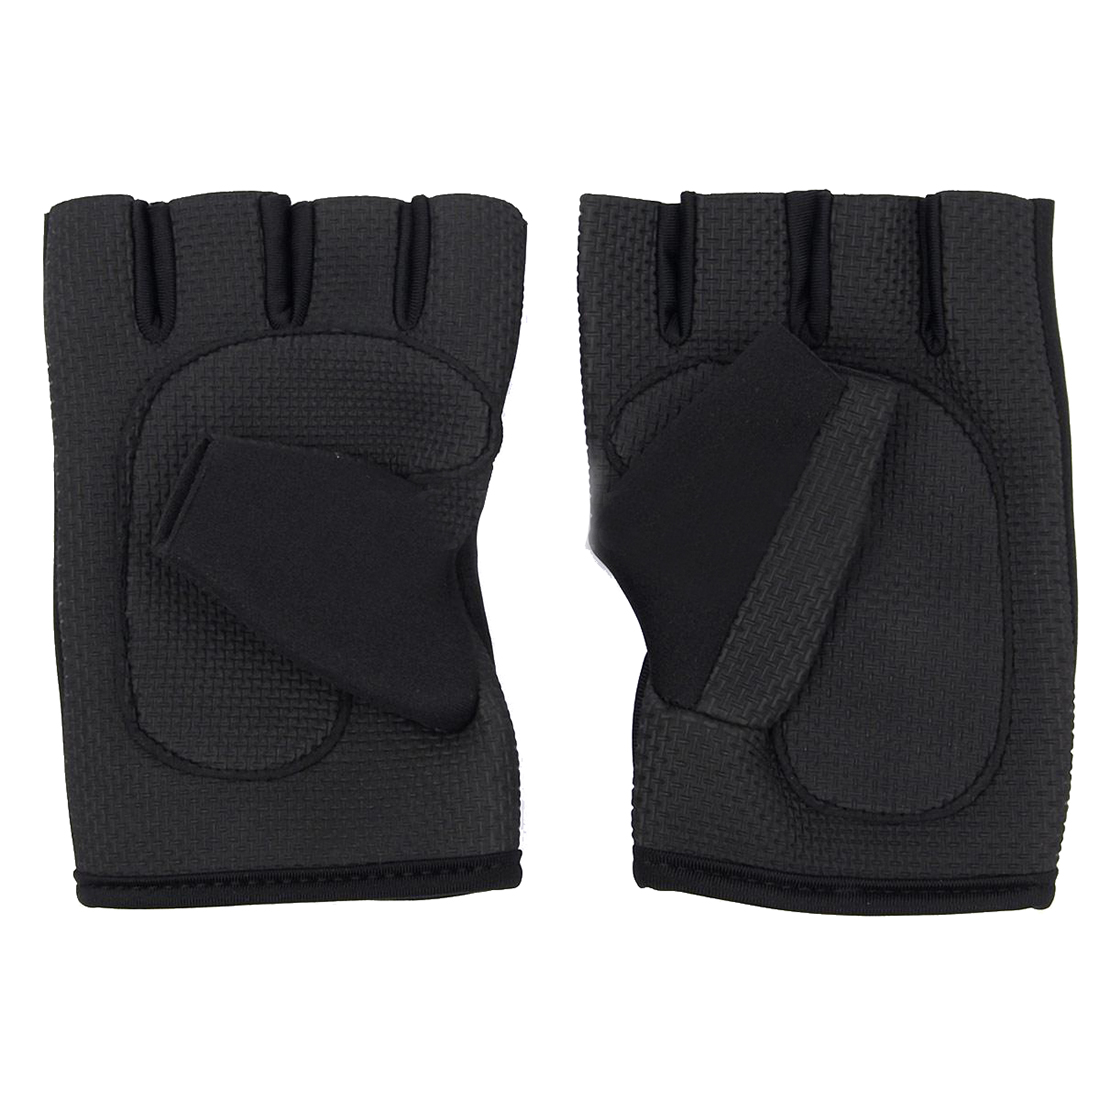 Half Finger Motorcycle Bike Bicycle Riding Cycling Sports Gloves GEL Pad